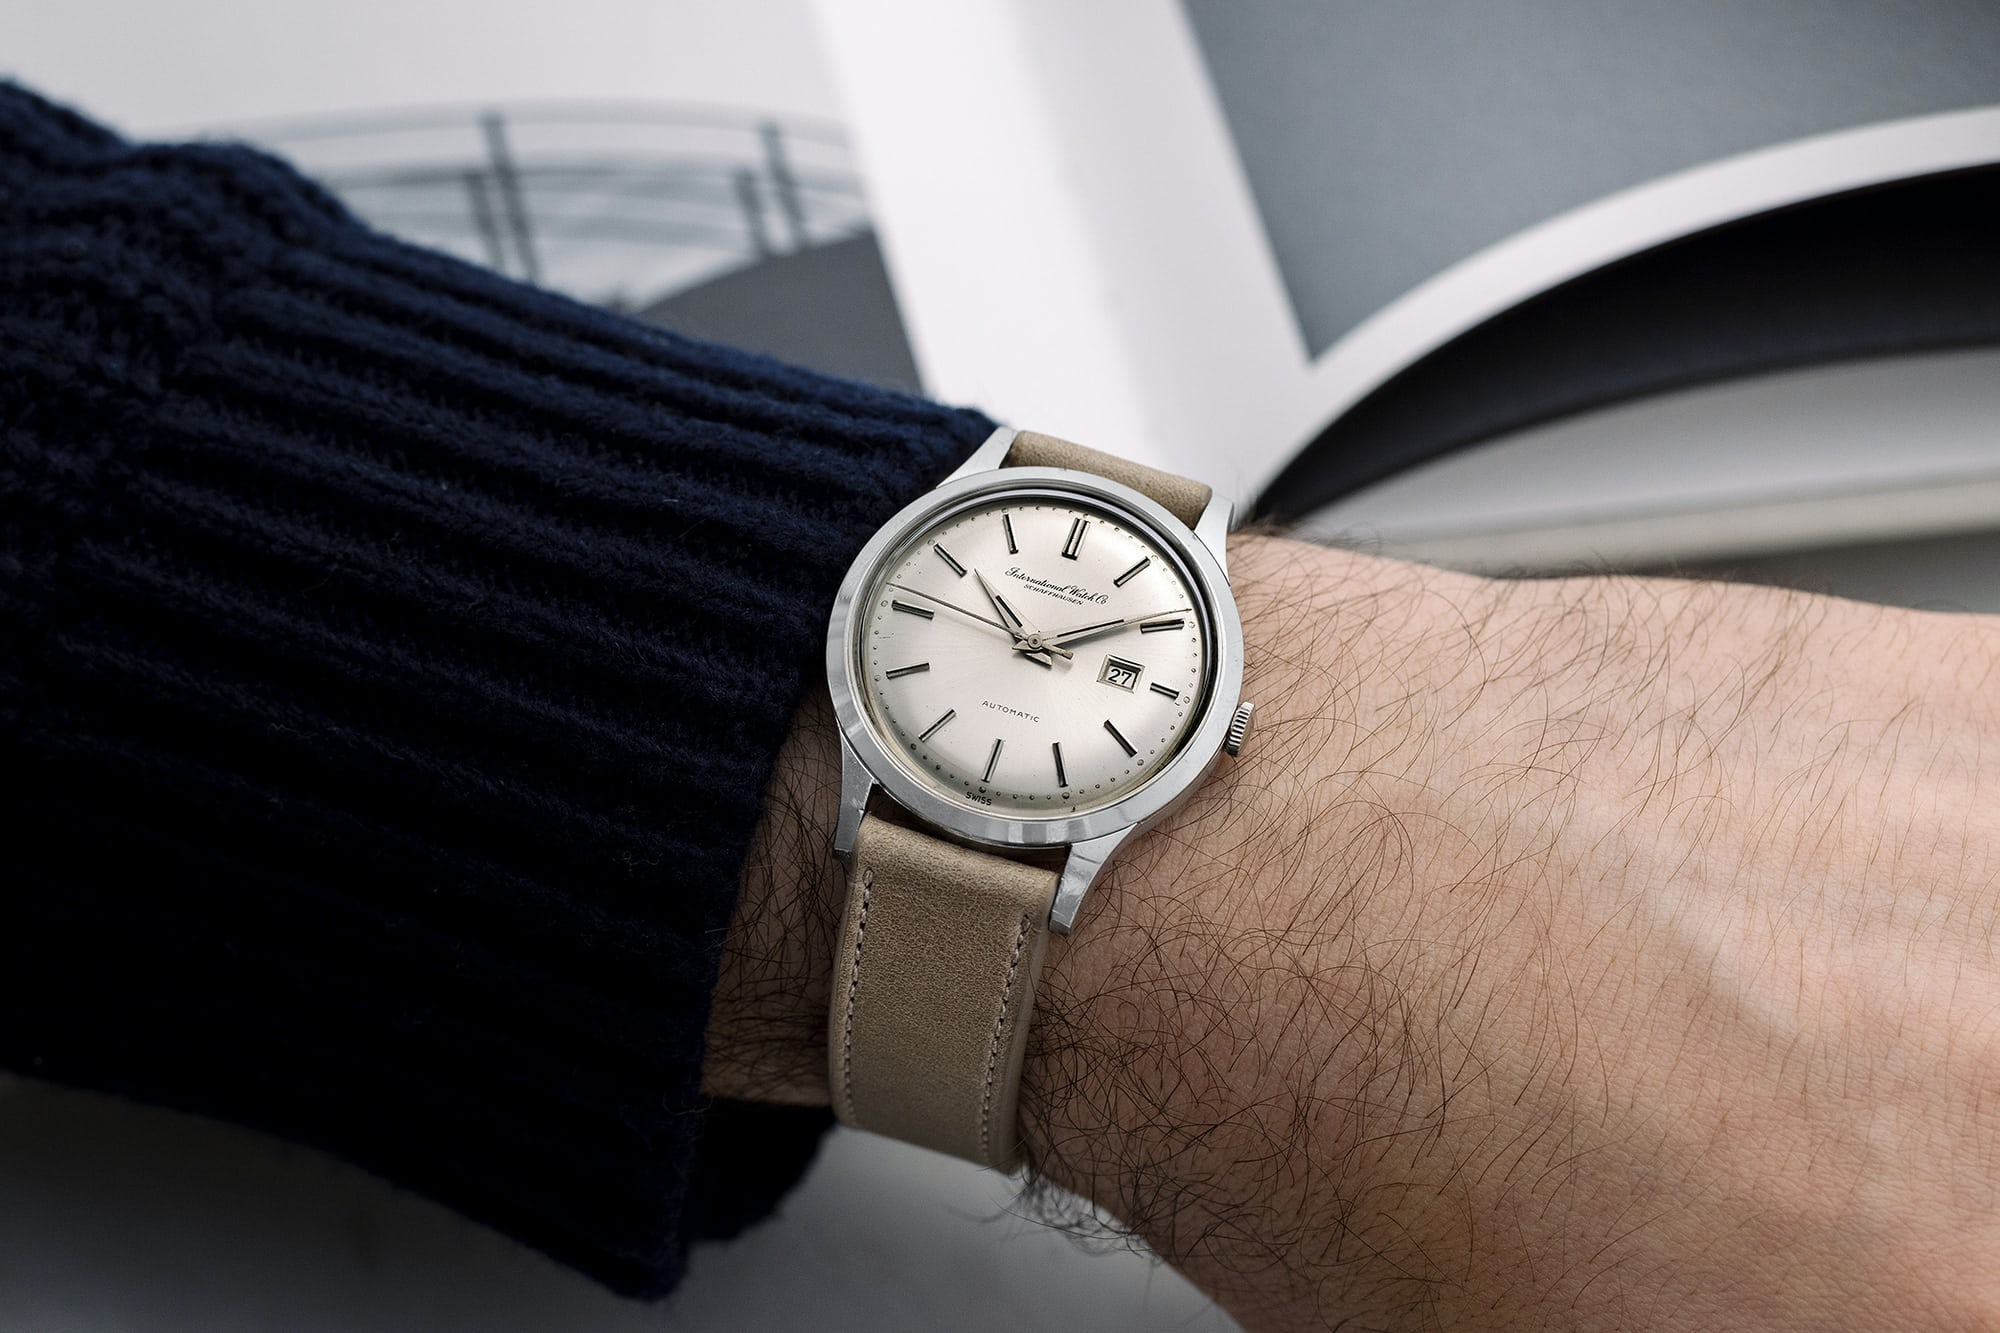 """<p><a href=""""https://shop.hodinkee.com/products/2508-iwc-ref-647a-ss-date"""" rel=""""noopener"""" target=""""_blank""""><u>1960s IWC Automatic Date Dress Watch Ref. 647A</u></a></p>"""